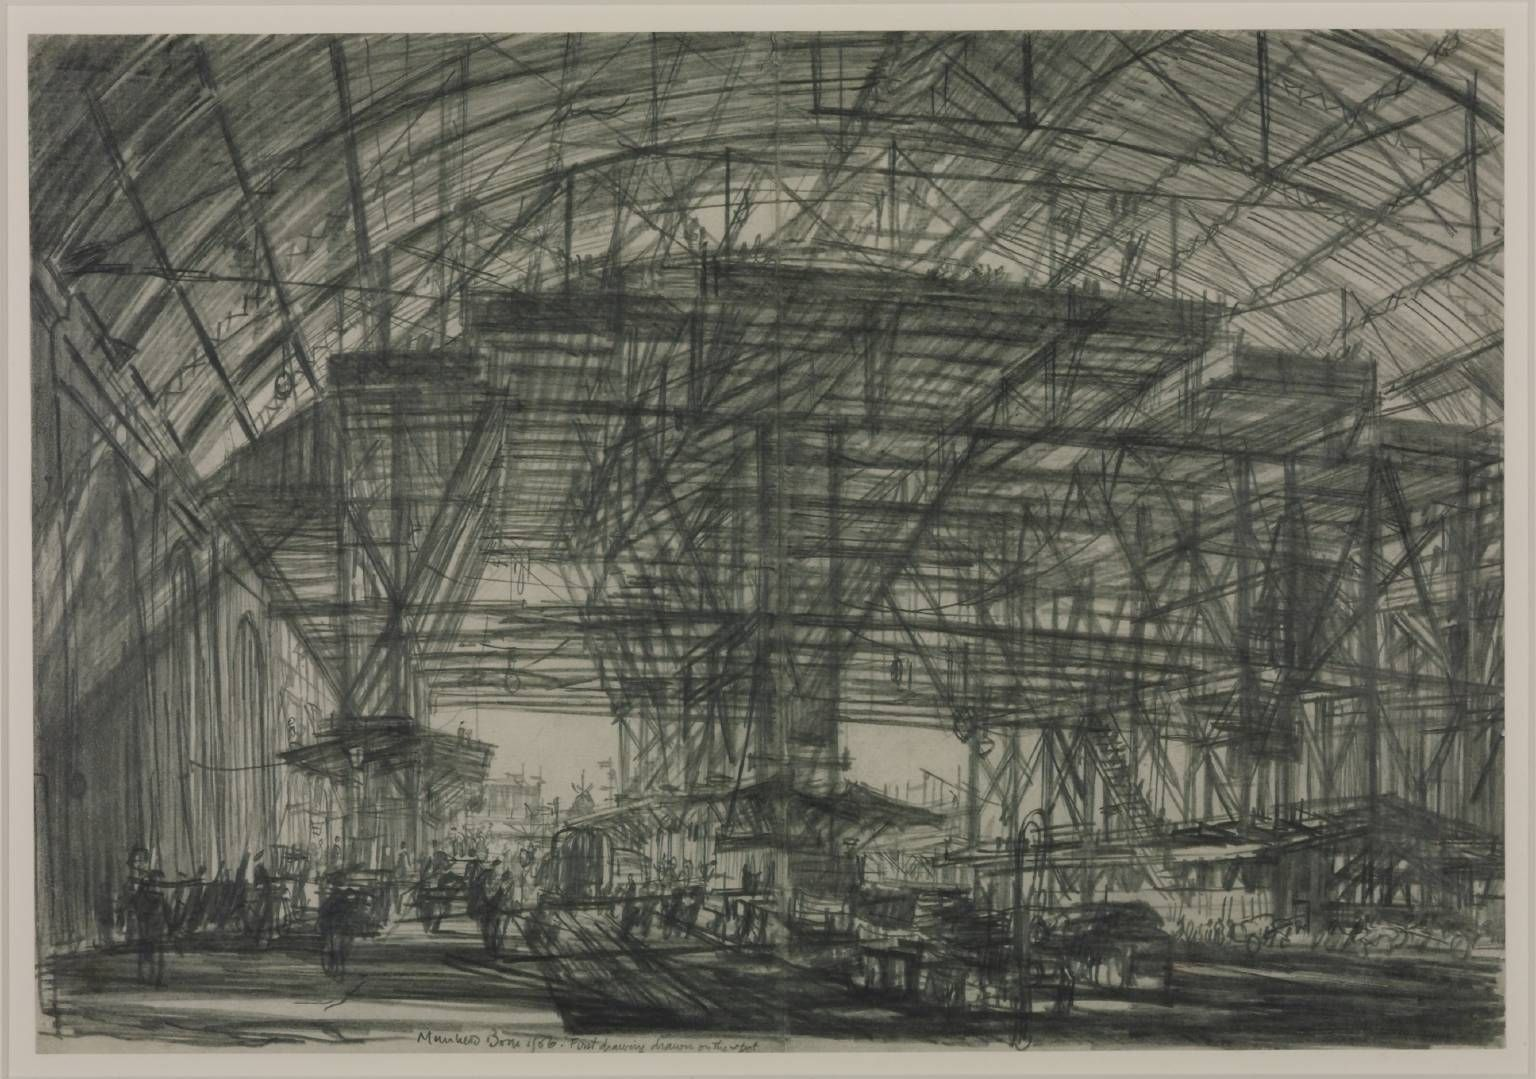 Sir Muirhead Bone 'Study for 'The Great Gantry, Charing Cross Station'', 1906 © The estate of Sir Muirhead Bone